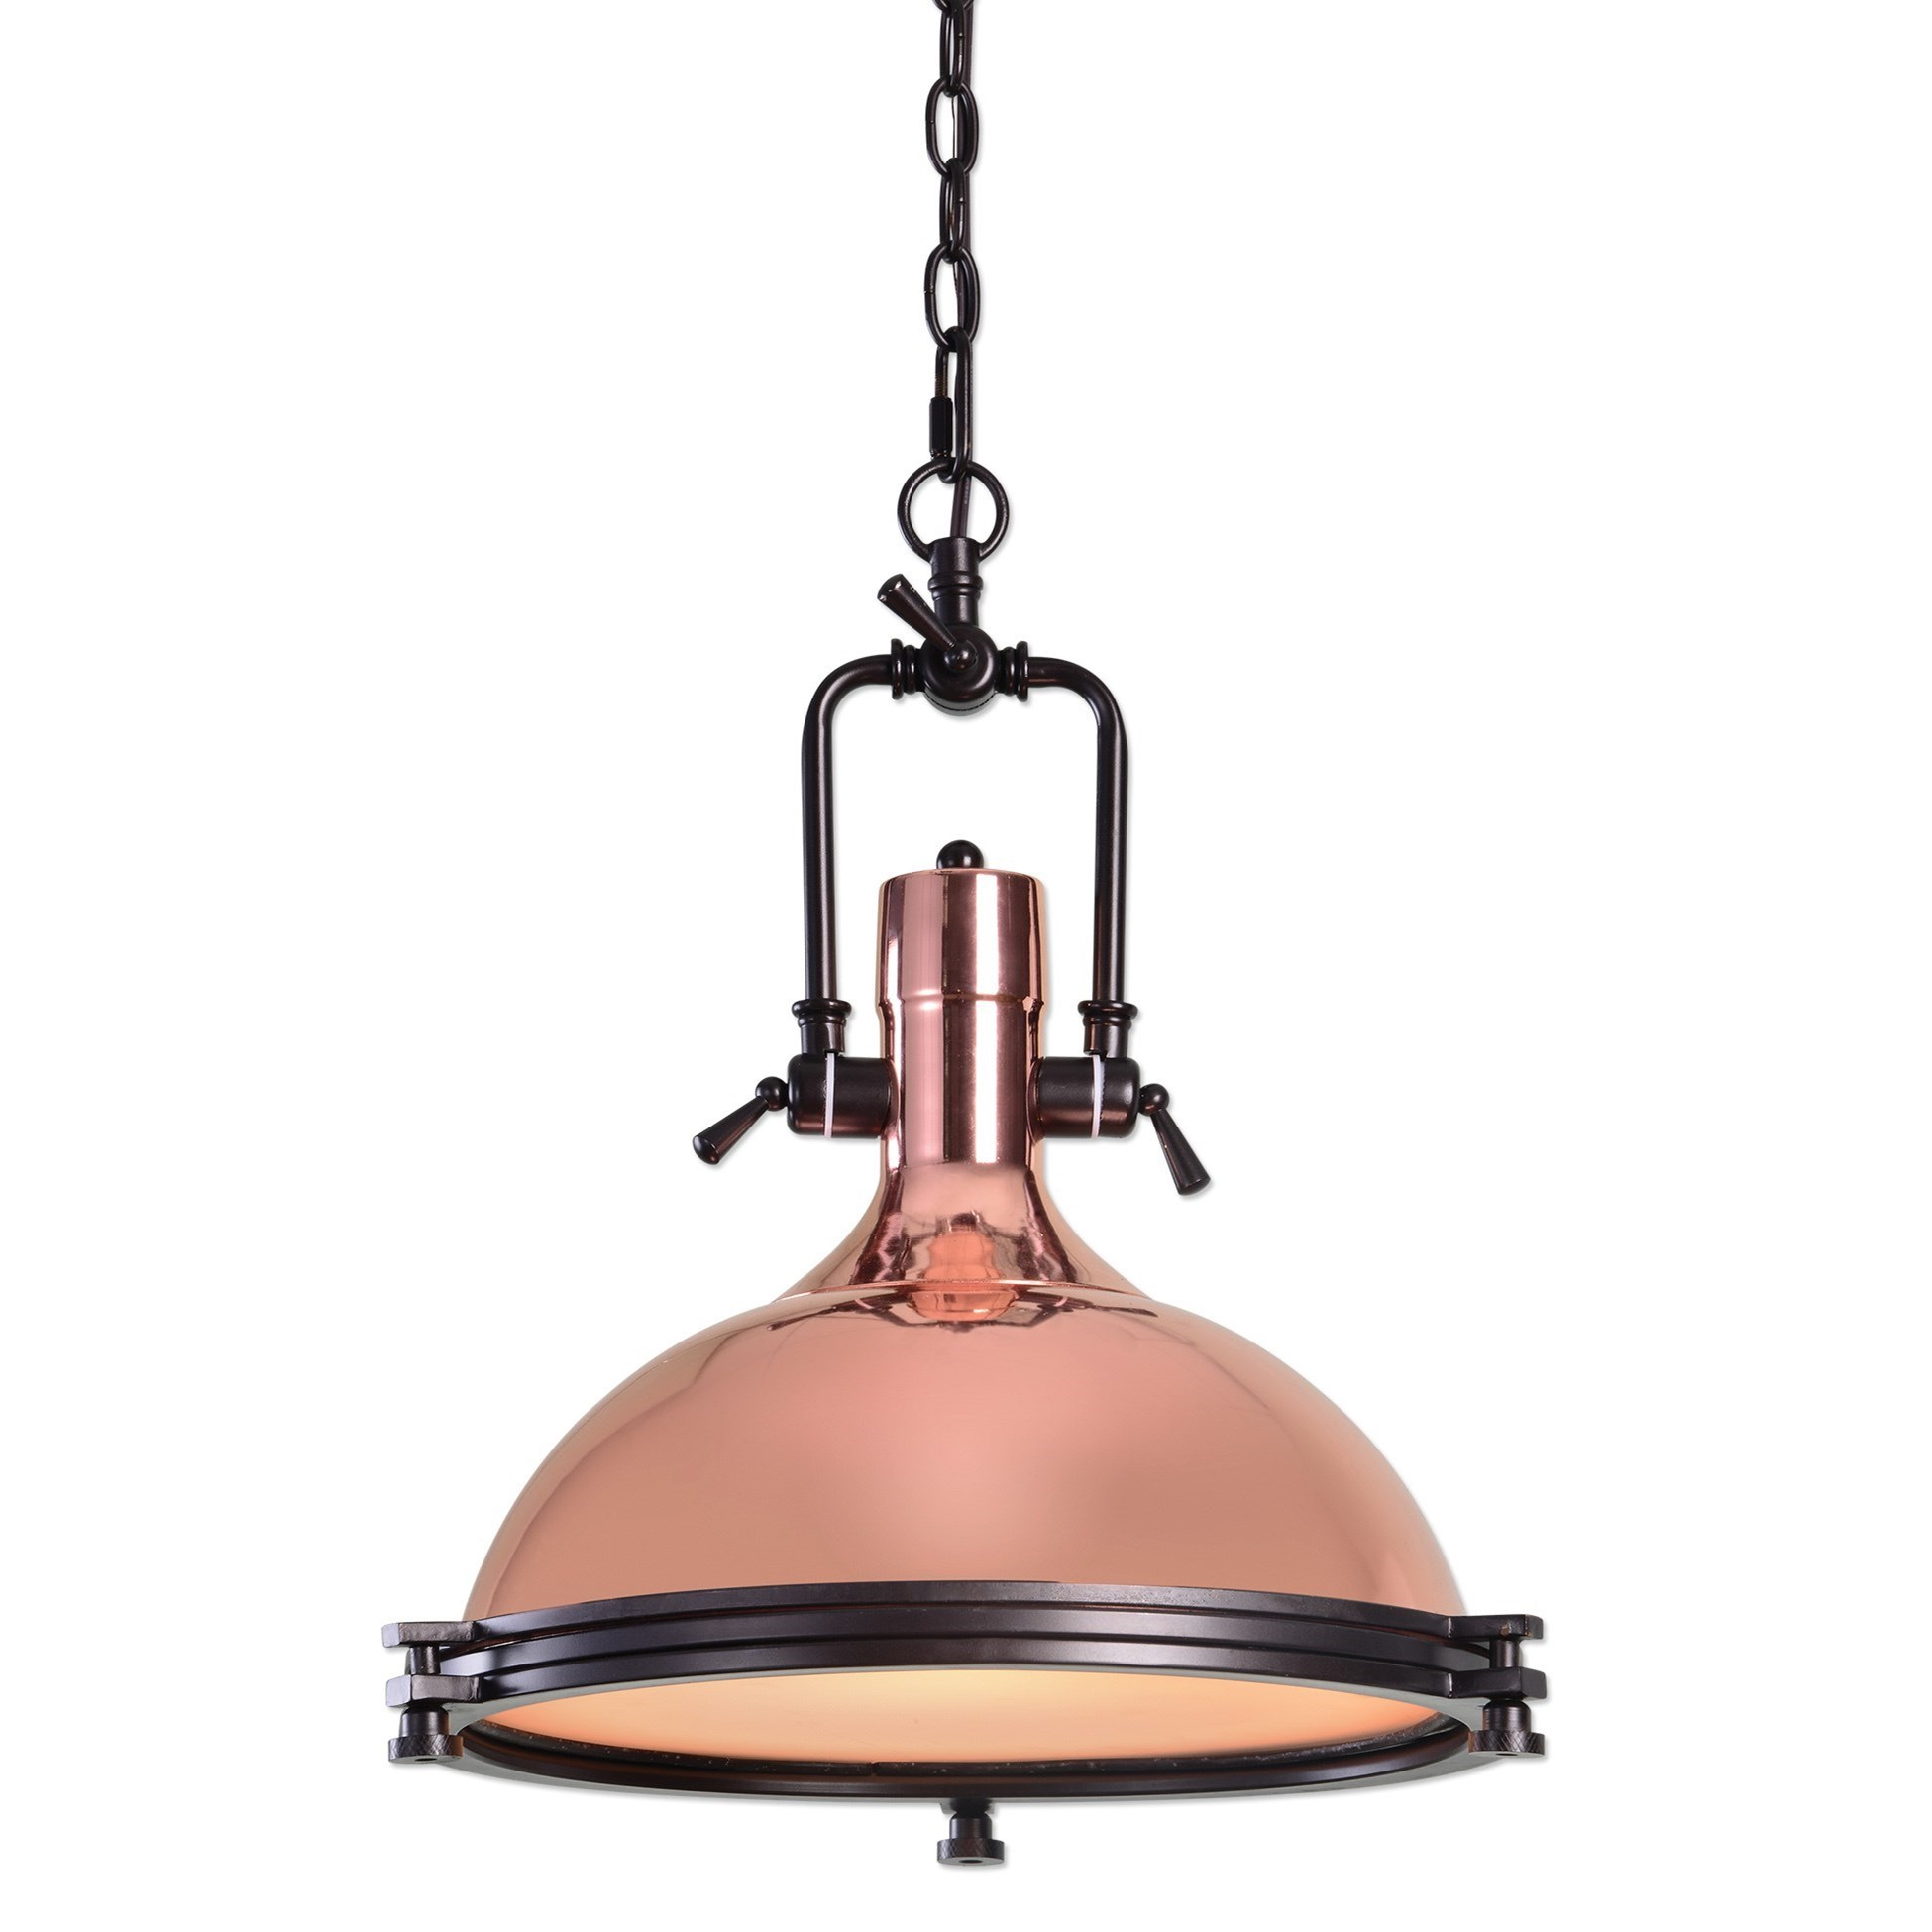 Uttermost Lighting Fixtures Bingham 1 Light Industrial Pendant - Item Number: 22086